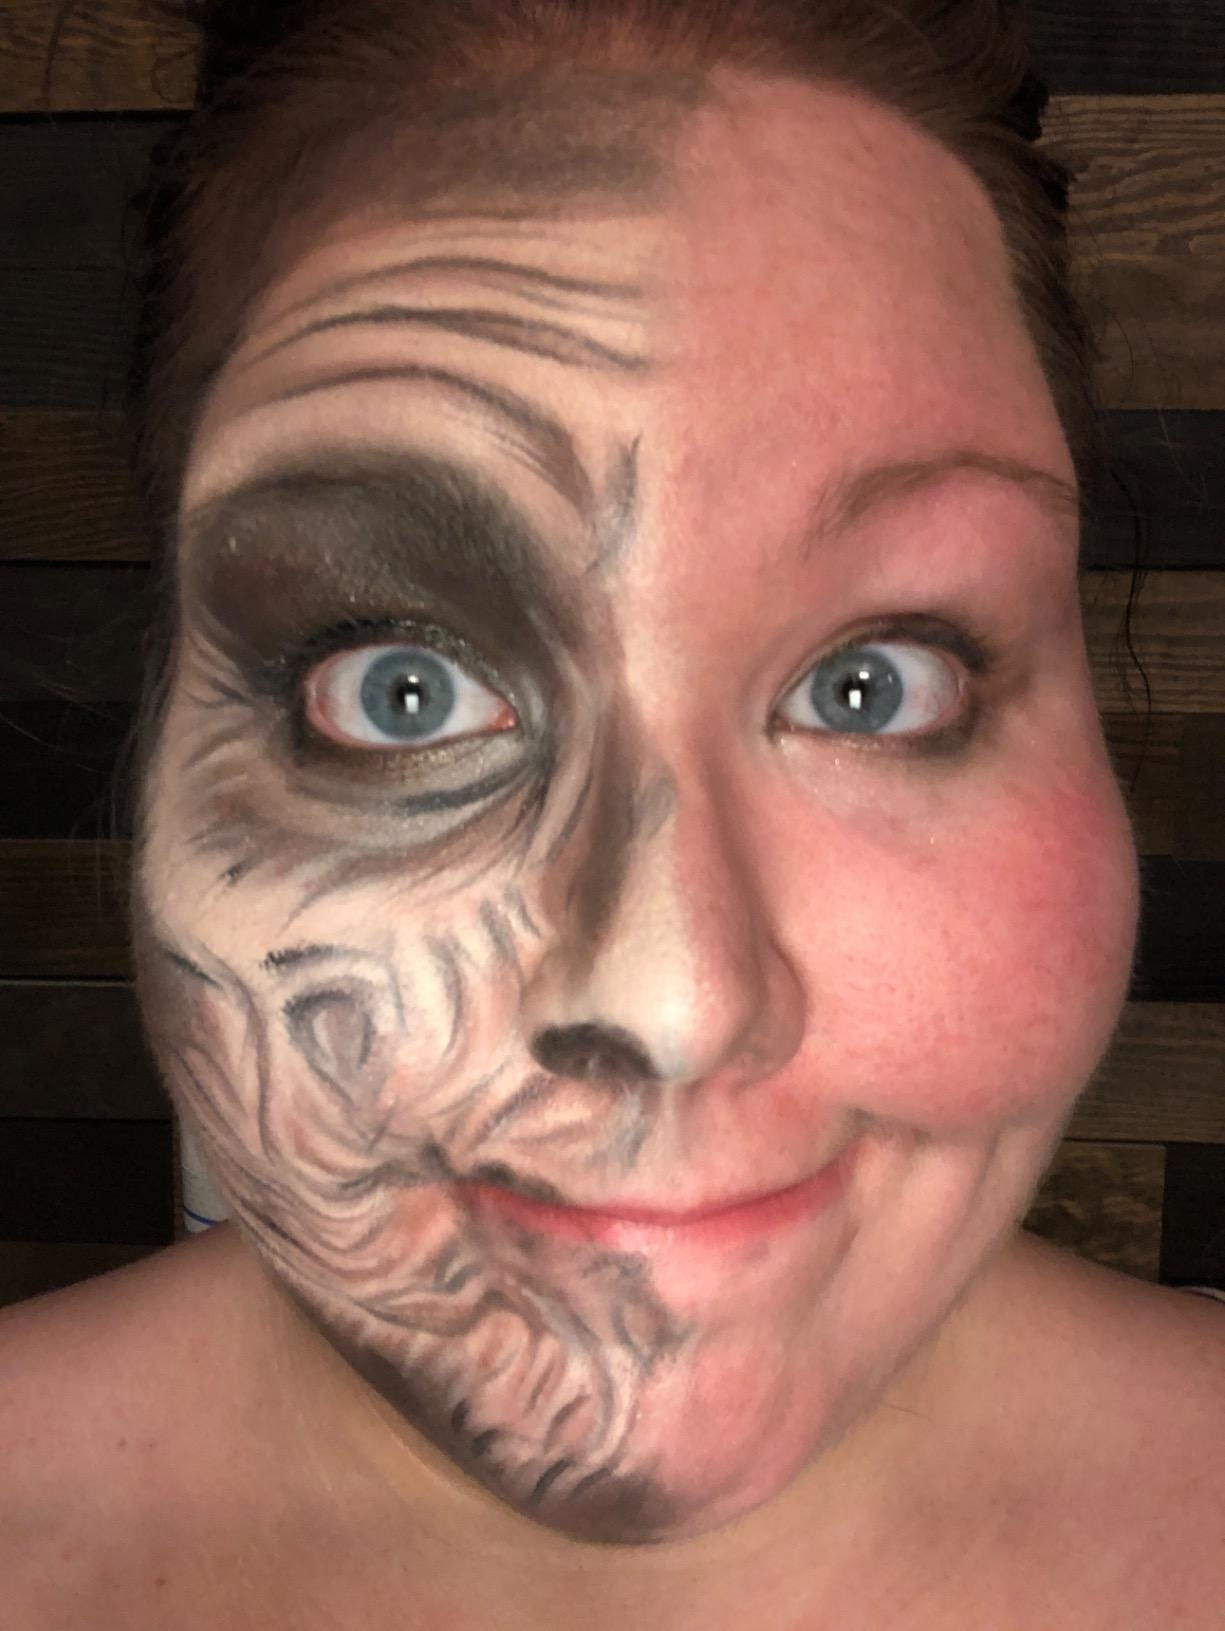 before and after photo of face with one side of spooky makeup and one side without makeup